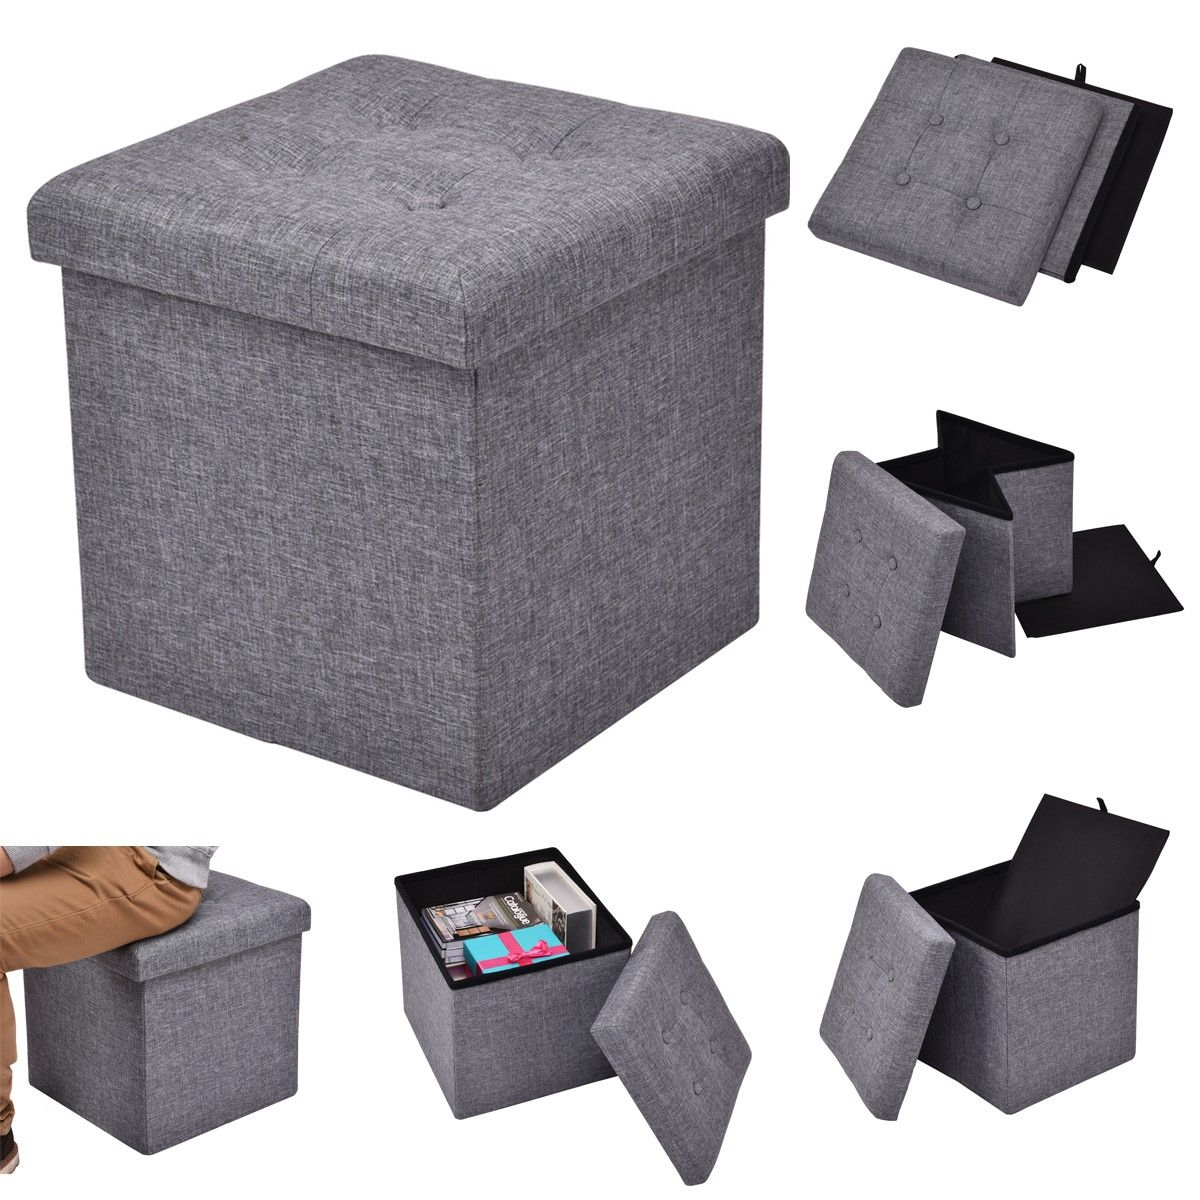 Square Collapsible Canvas Storage Box Foldable Kids Toys: Costway Folding Cube Storage Ottoman Seat The Square